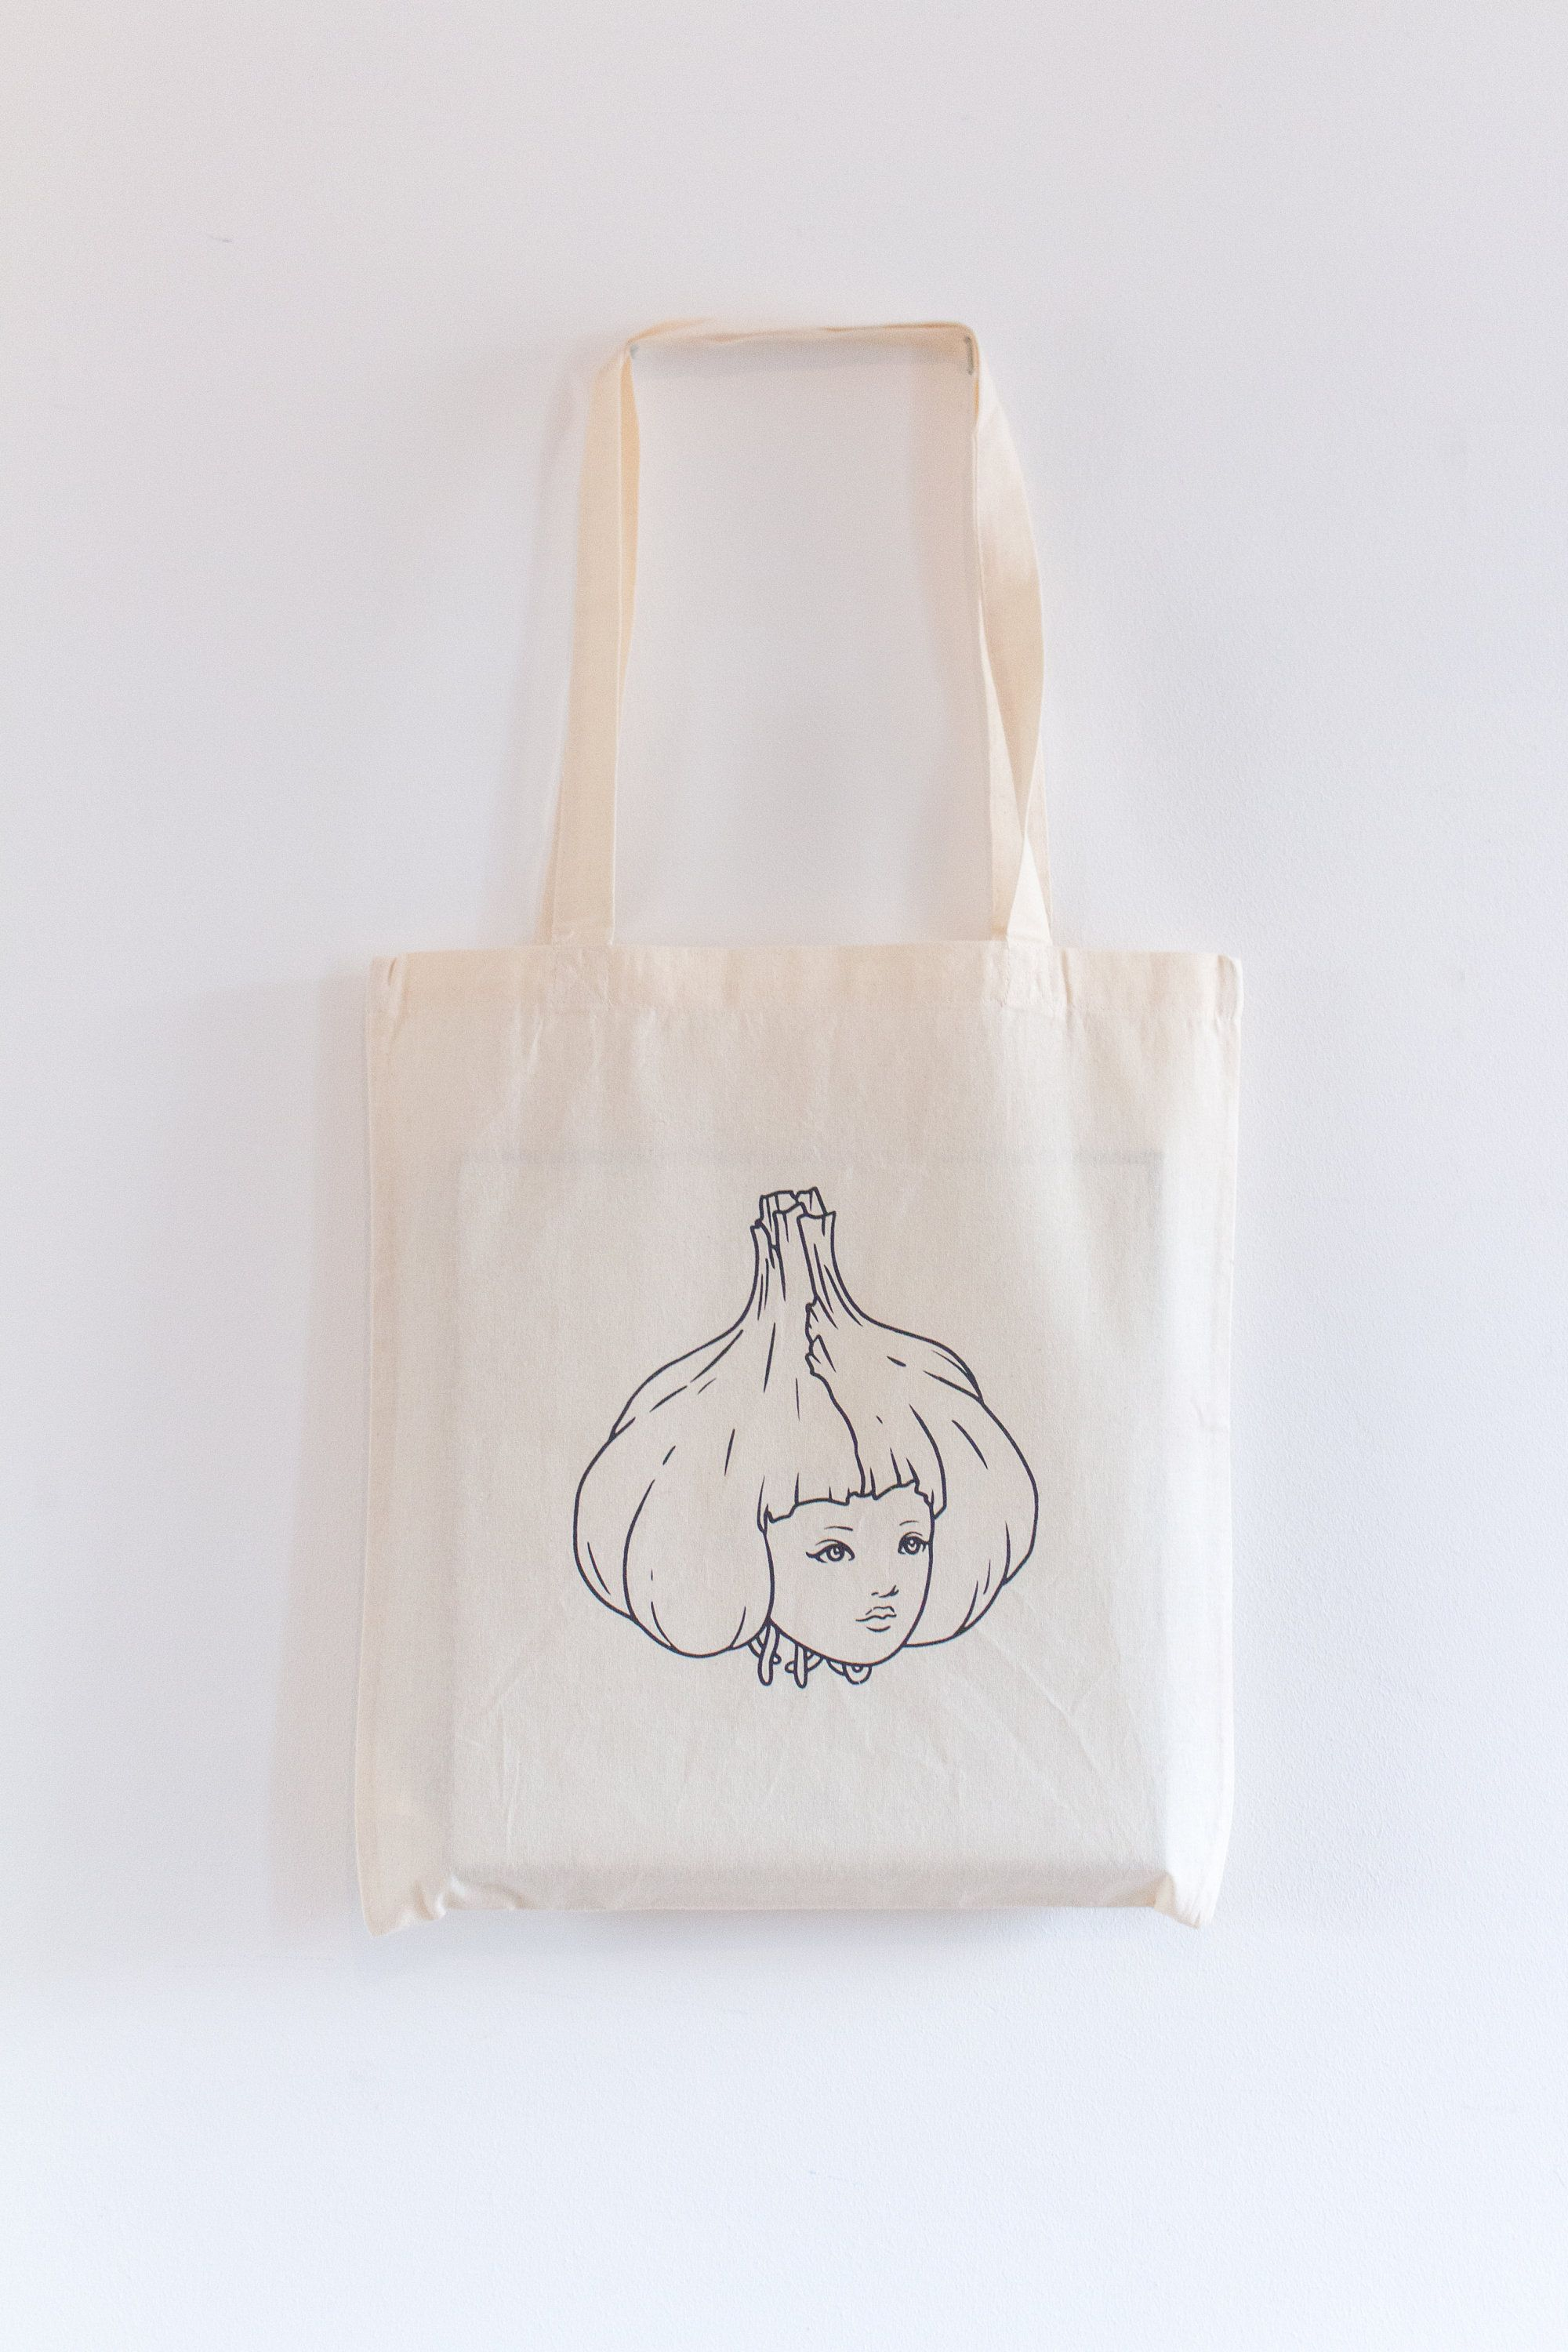 Download Garlic Girl Hand Printed Fair Trade Tote Bag Etsy Printed Canvas Tote Bag Printed Tote Bags Girls Hand